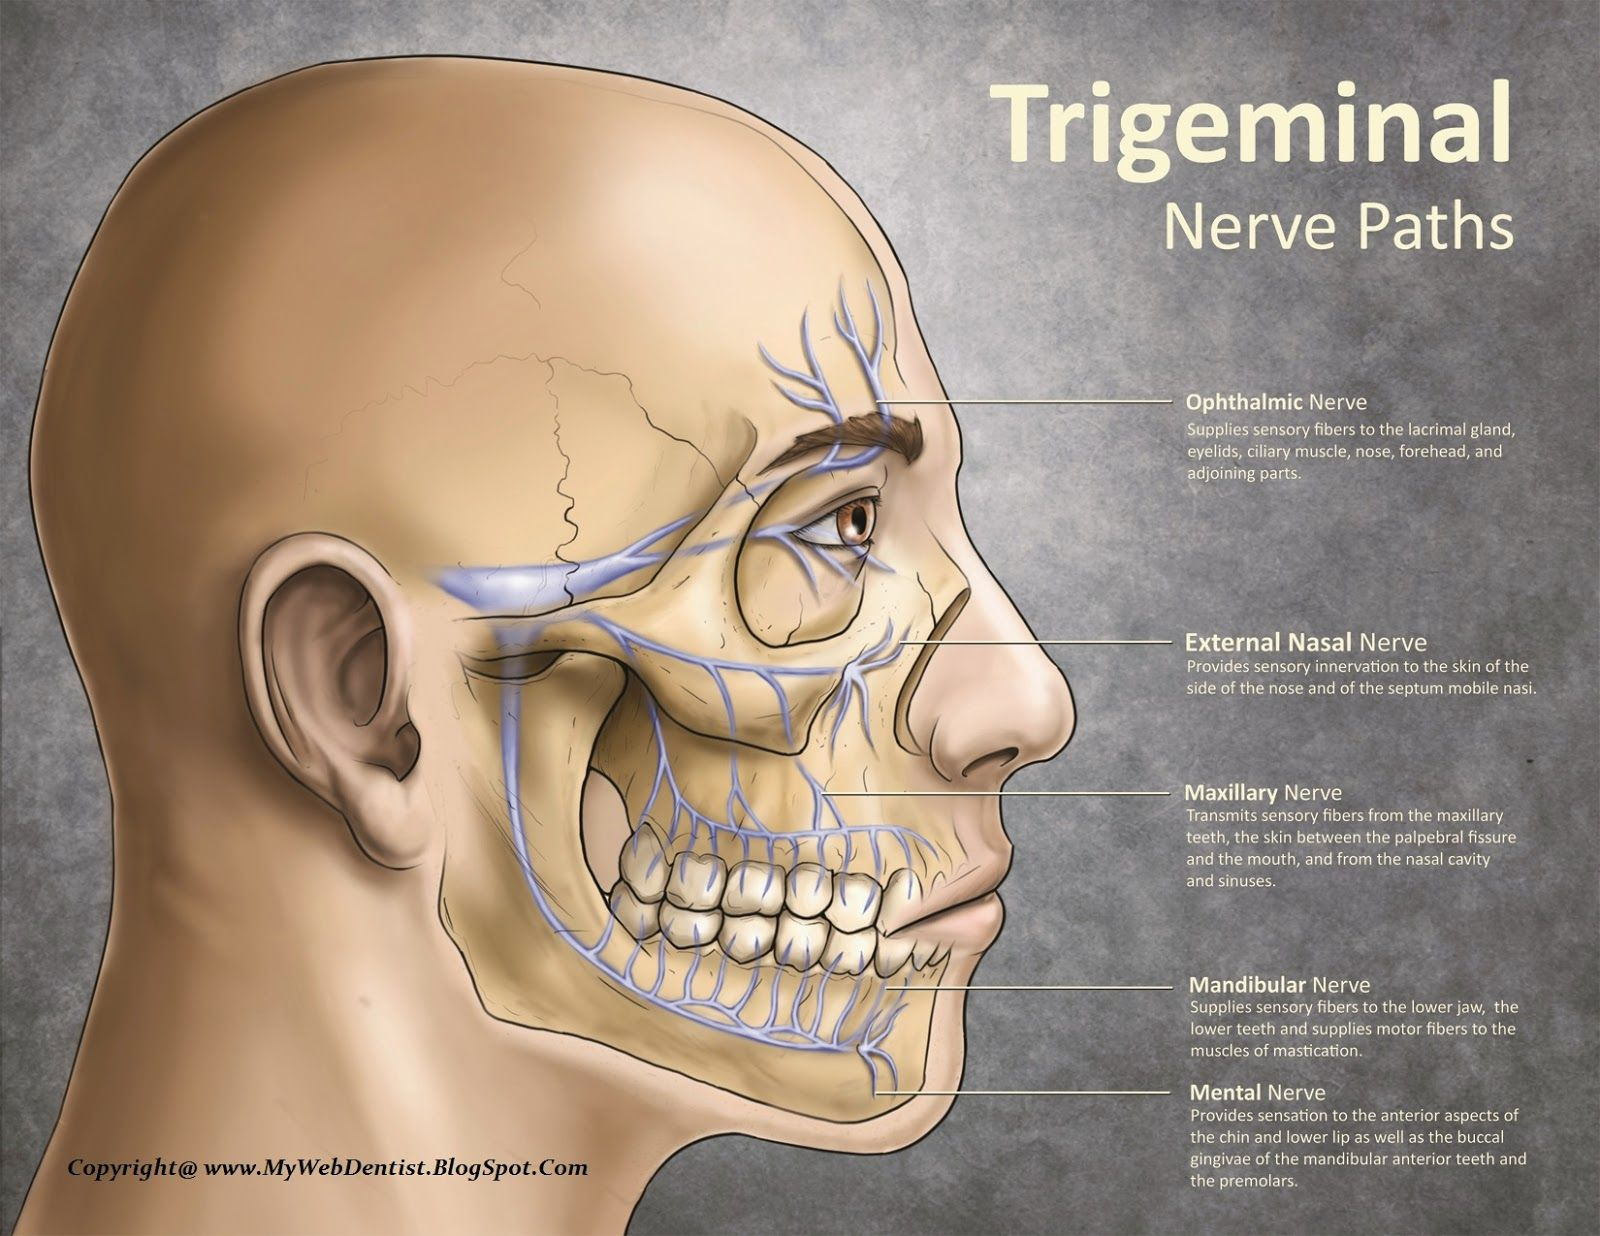 Trigeminal Nerve Visualization For People Having Difficulty Chewing